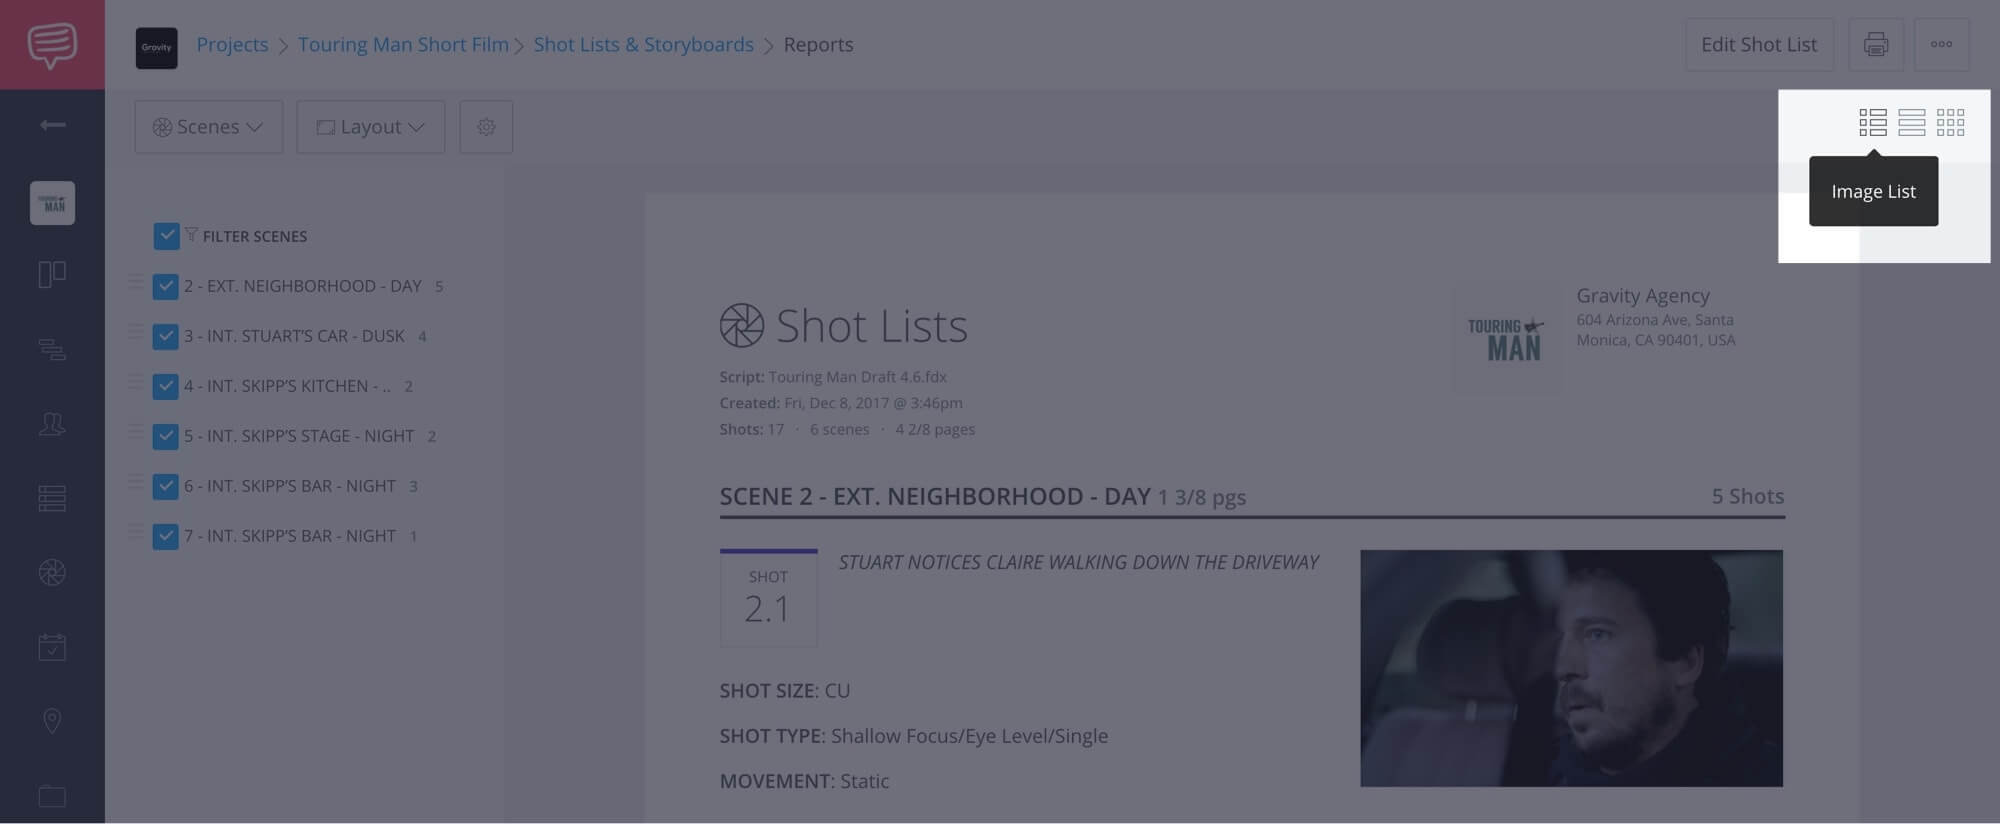 How to Create a Shot List with StudioBinder - Shot List Creator Template - 24